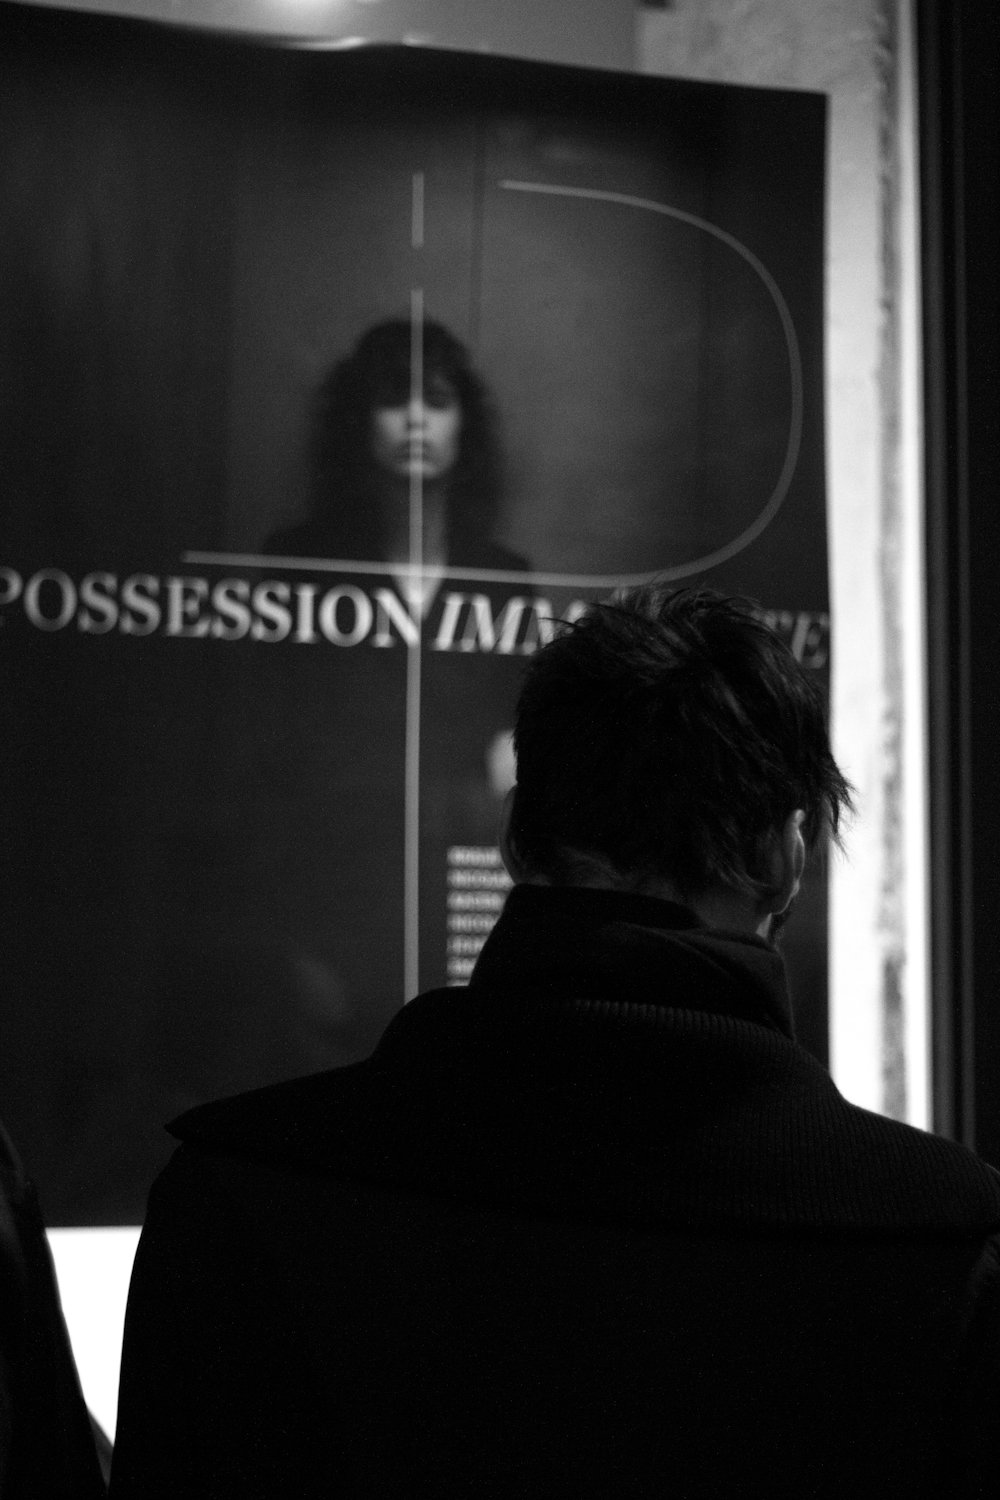 Possession Immediate 2015